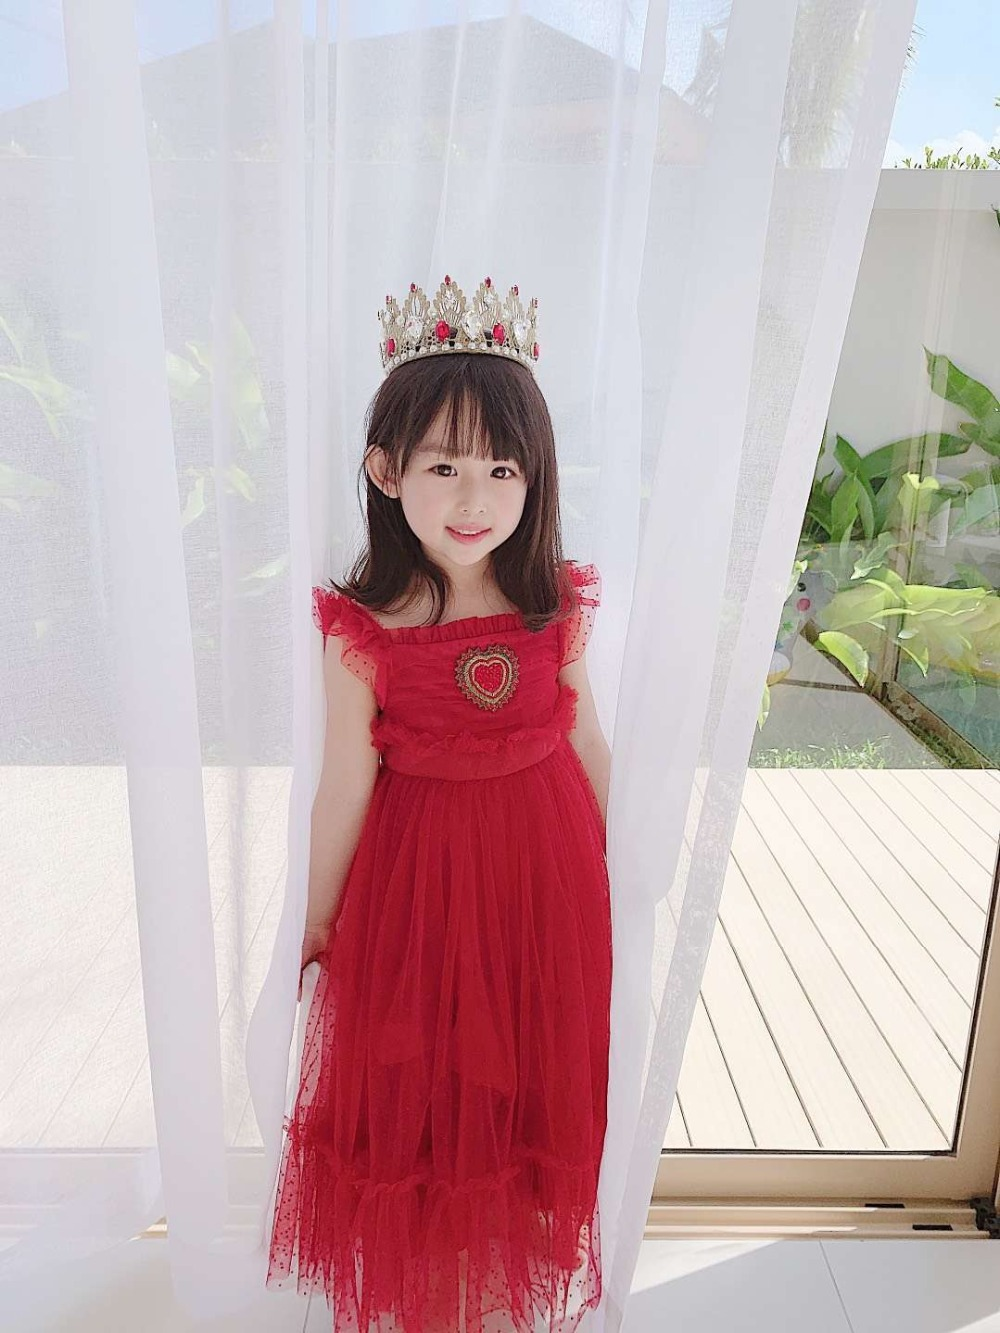 Girls 2019 new red party fashion dressGirls 2019 new red party fashion dress